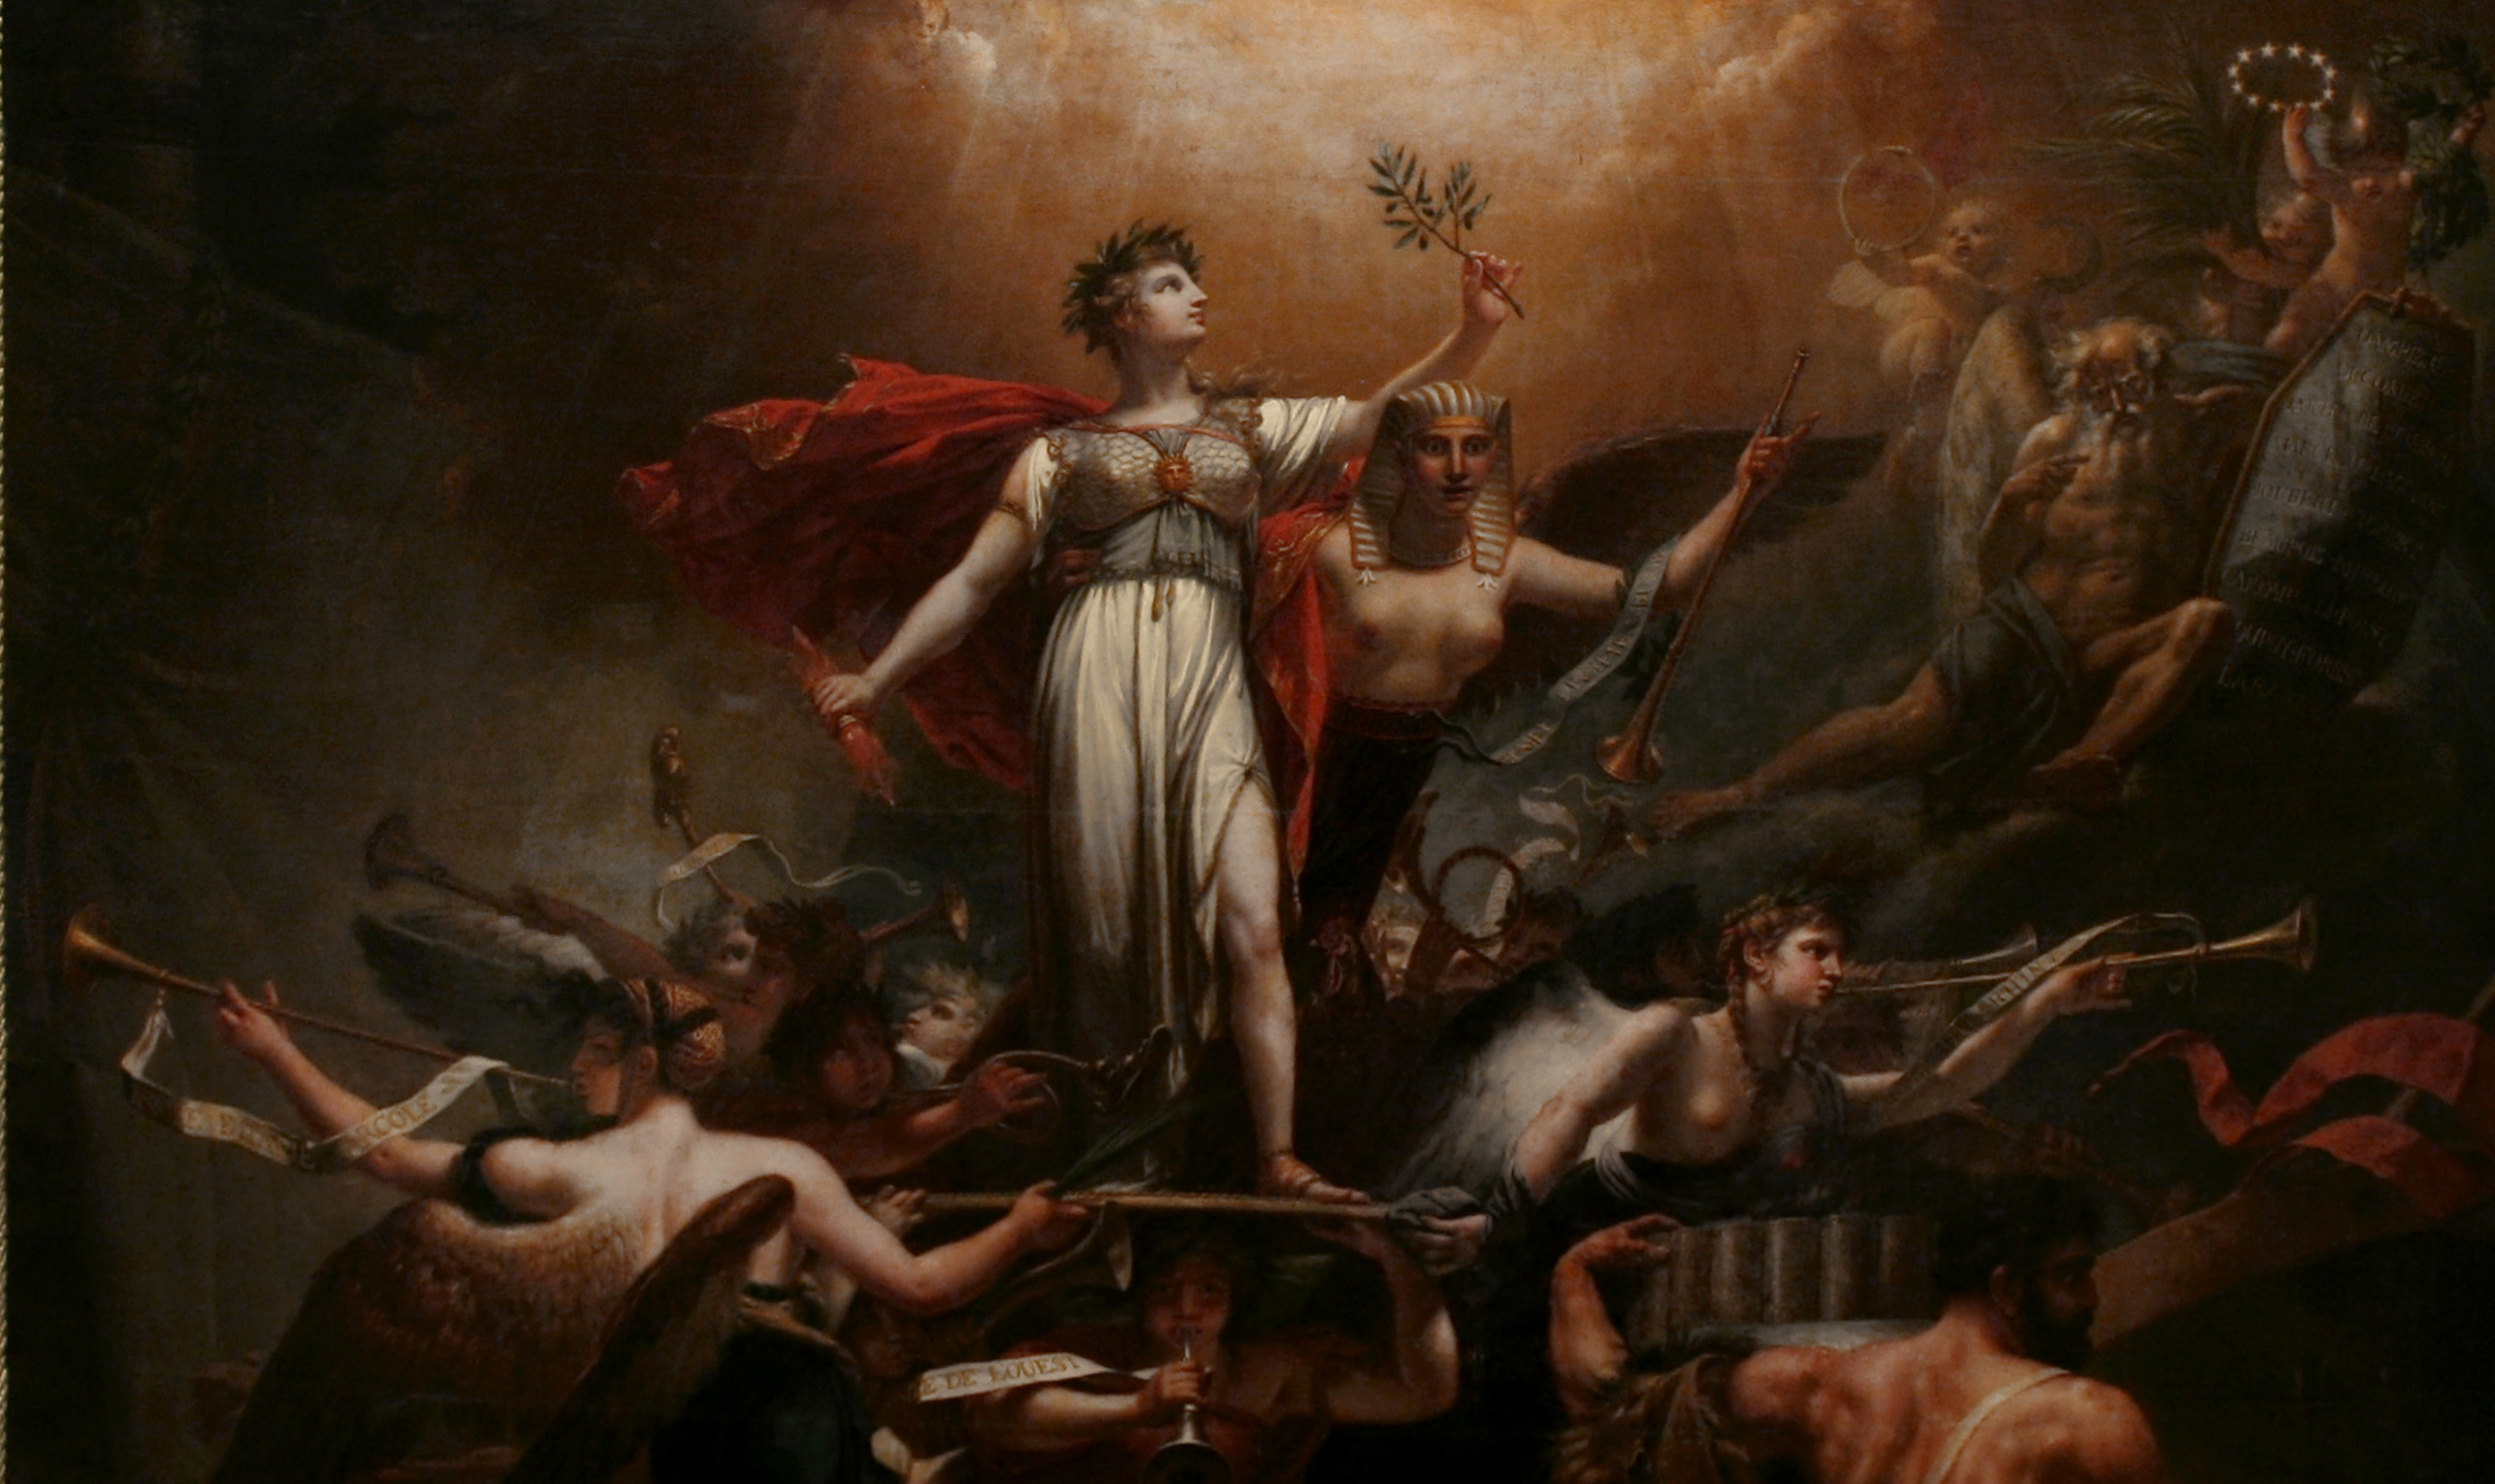 the history of the romantic period and the europes rise to power after the french revolution Music history - the romantic period romanticism was brought about by the social and political stresses following the french revolution central europe and.